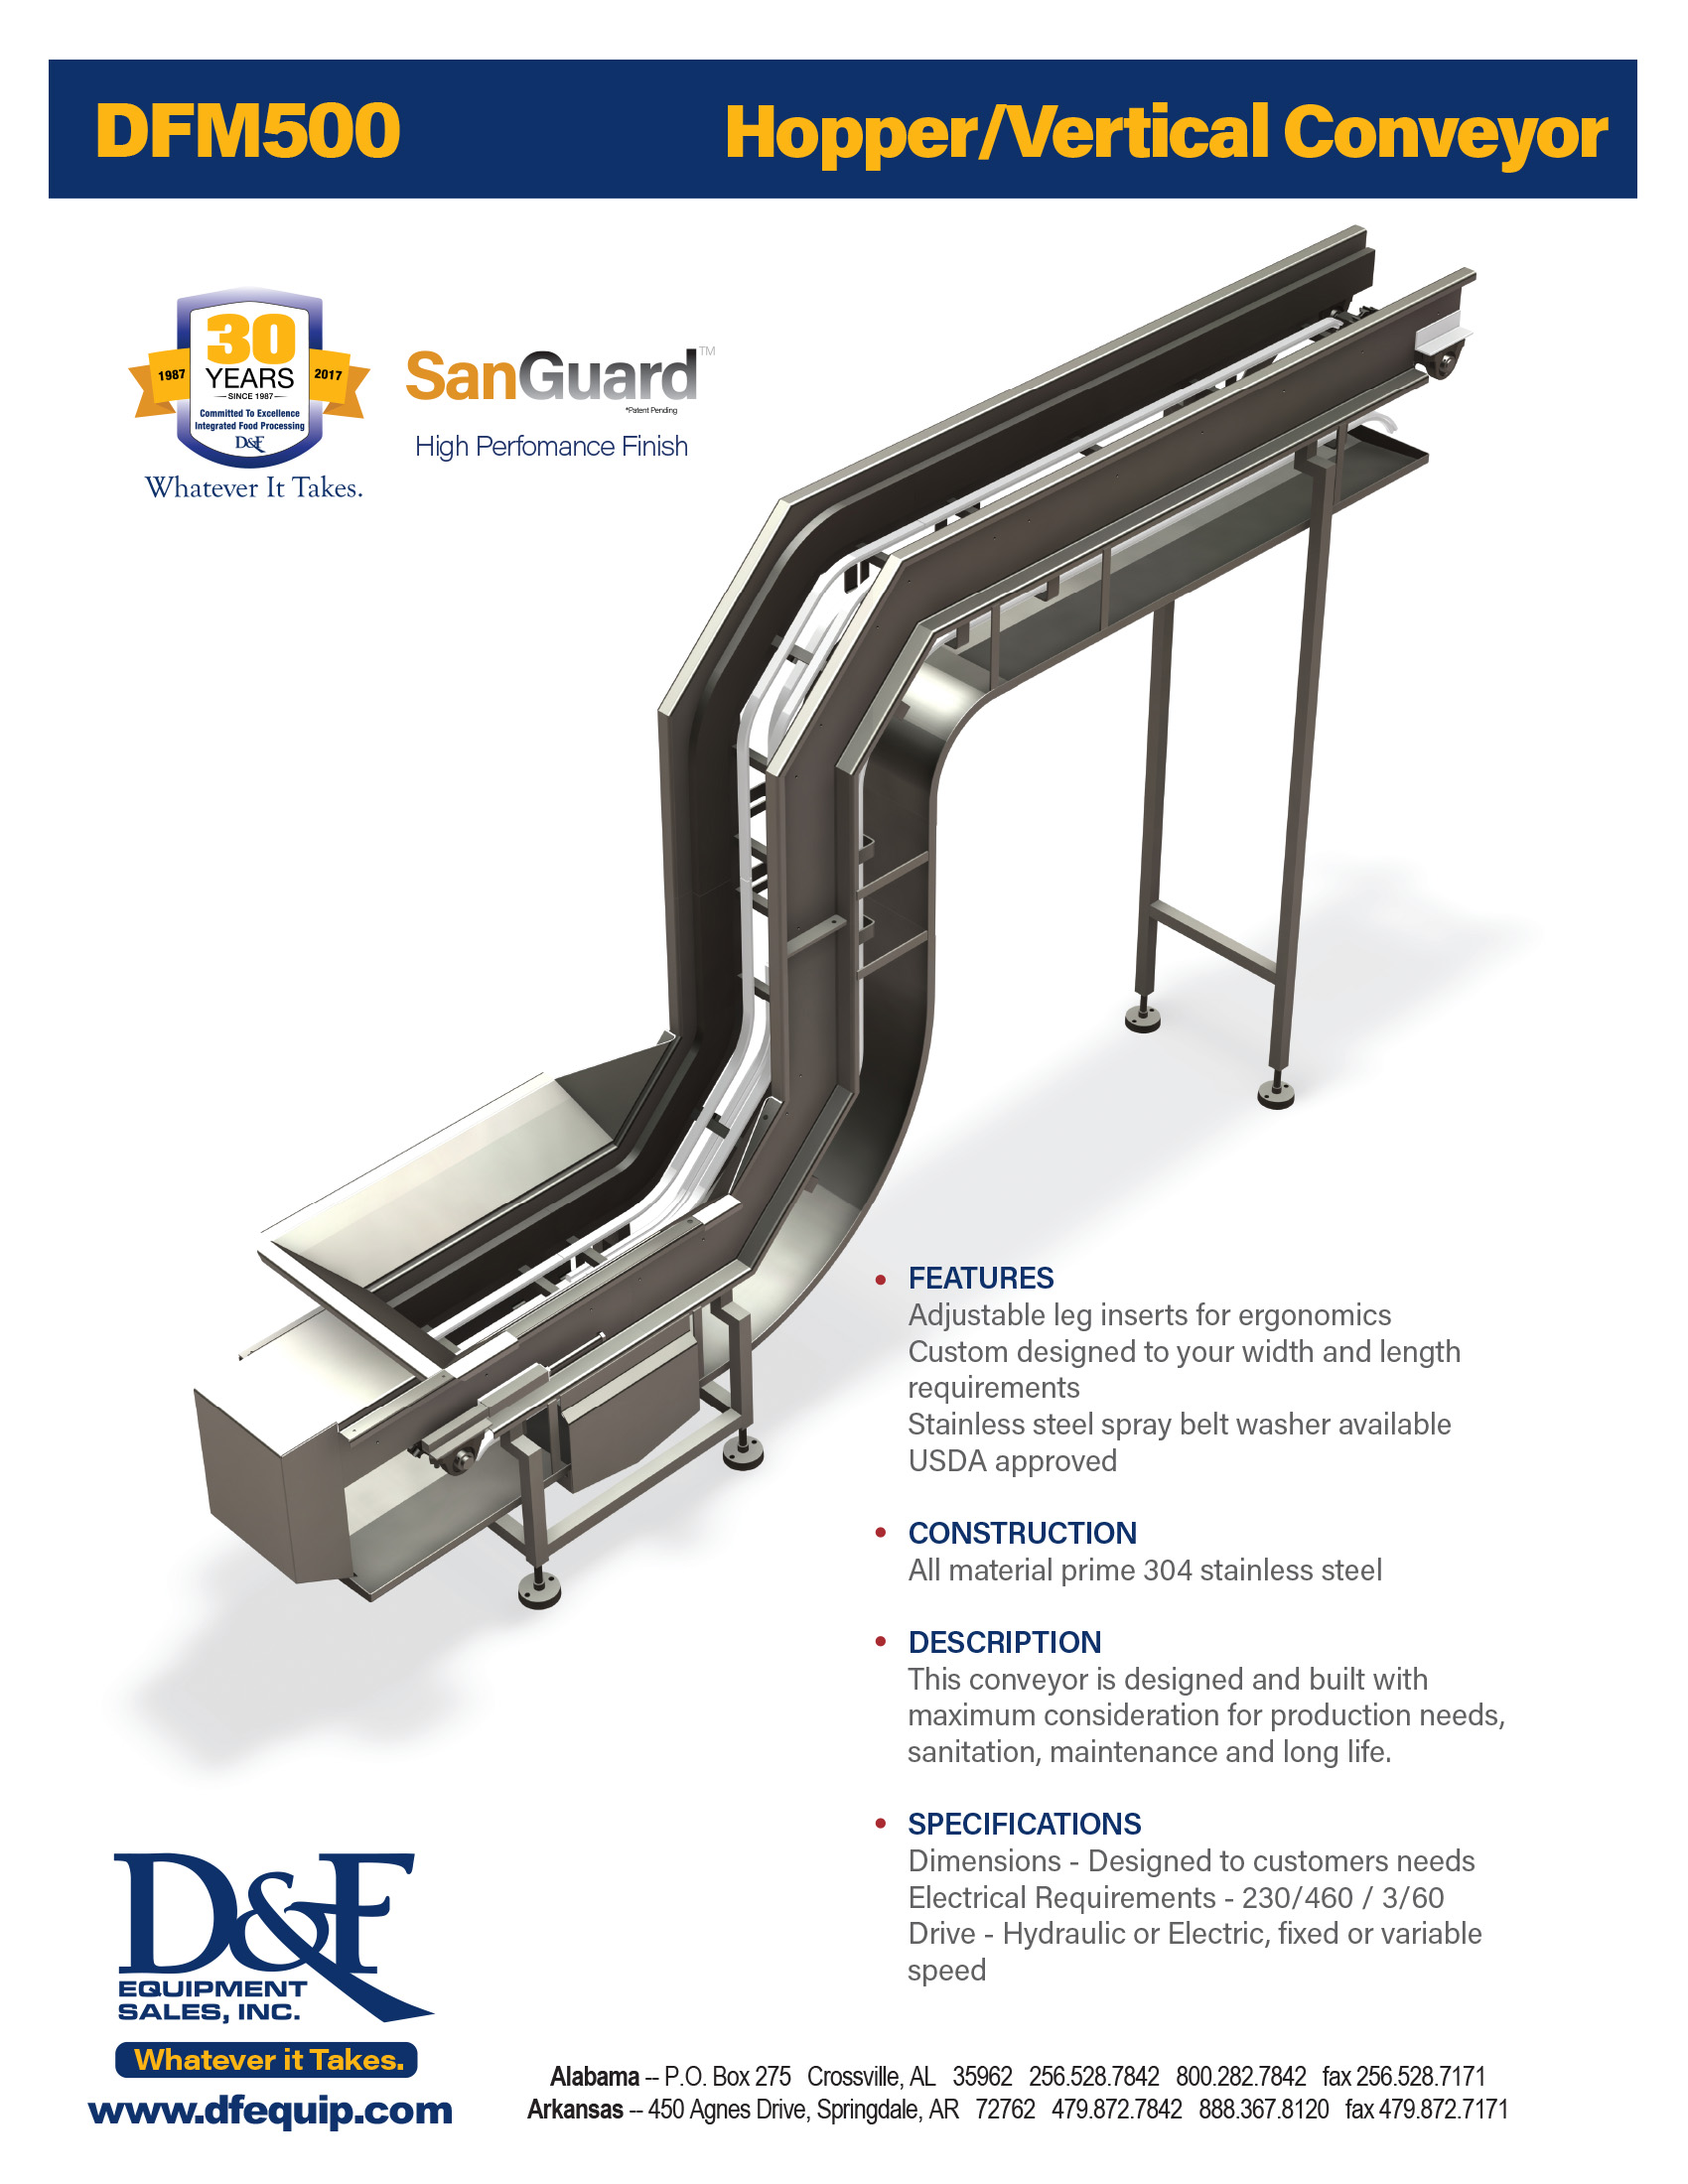 DFM500-HopperVerticalConveyor2017.jpg